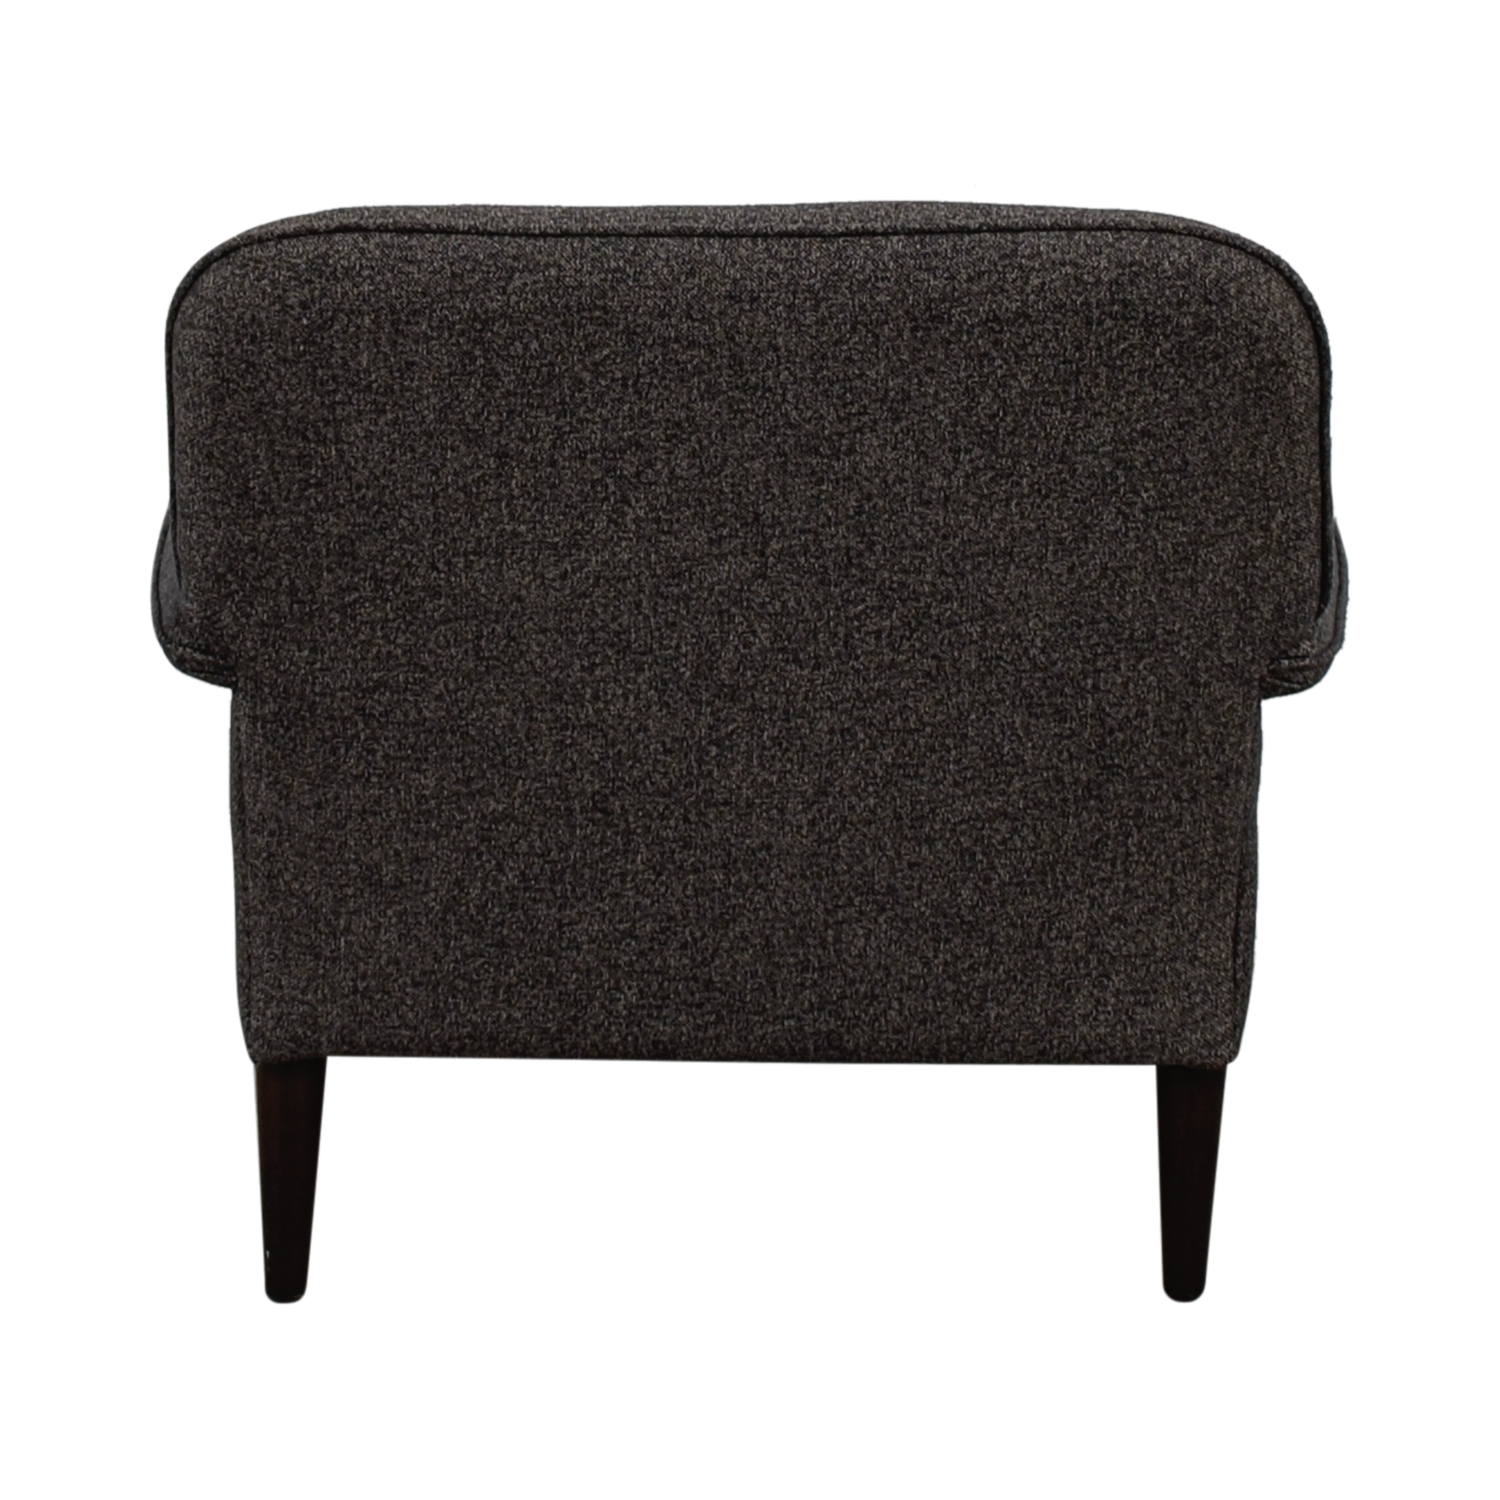 Grey Tweed Accent Chair dimensions